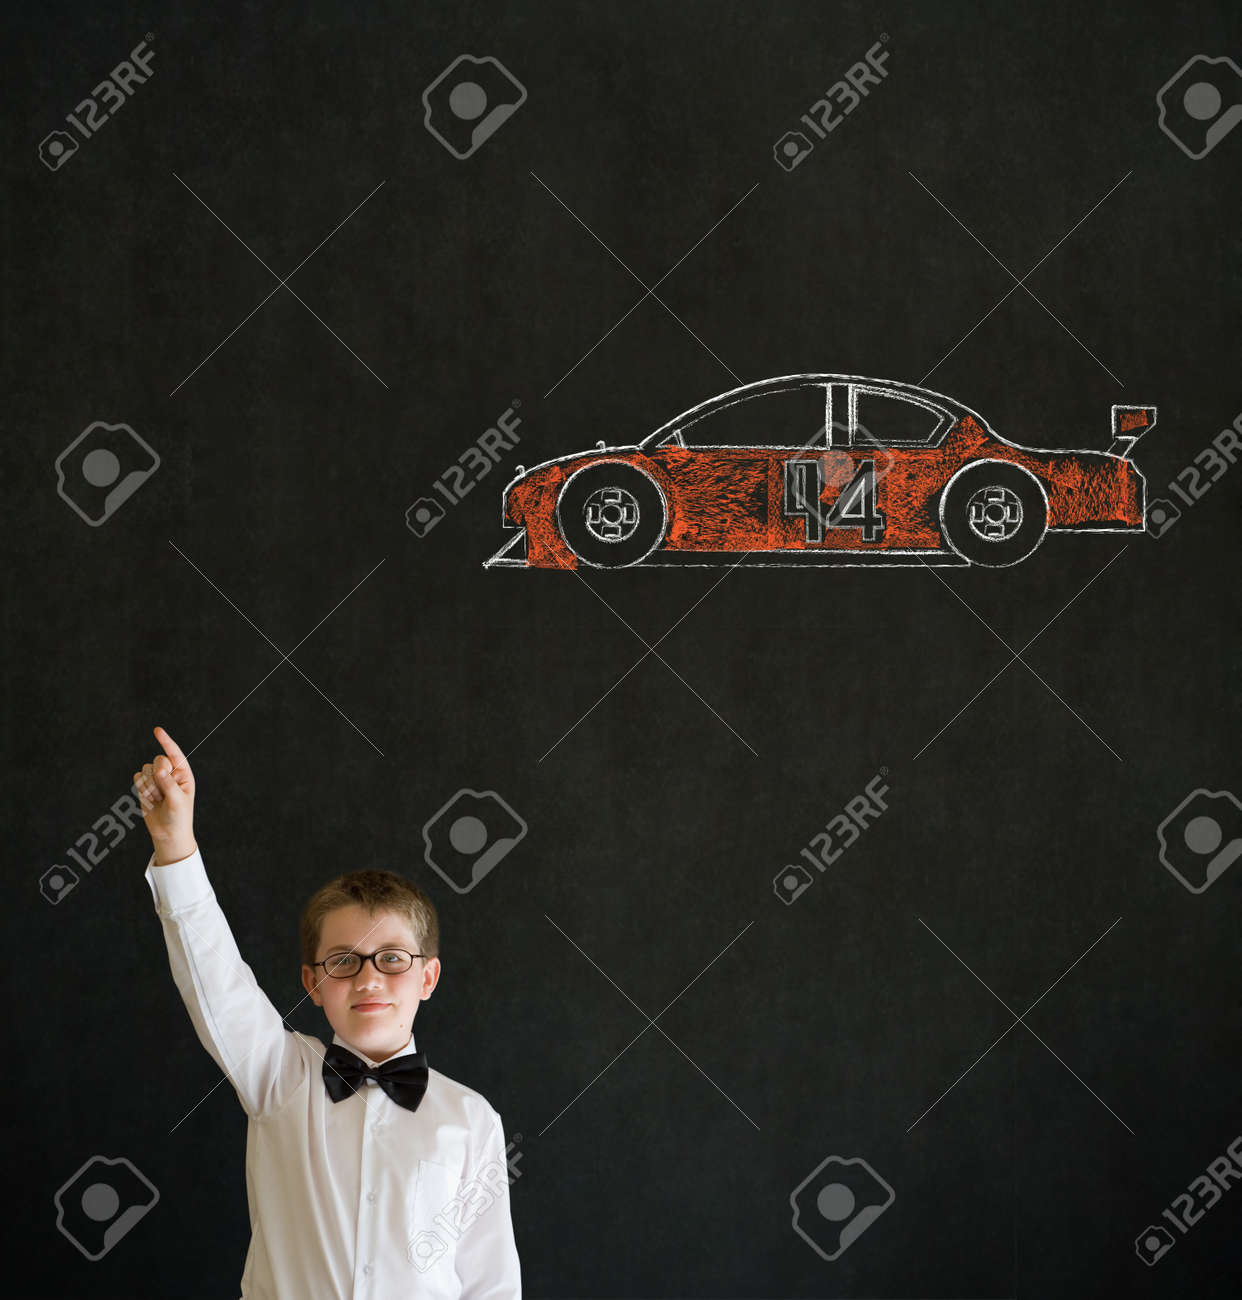 Hand up answer boy dressed up as business man with Nascar racing fan car on blackboard background Stock Photo - 19727495